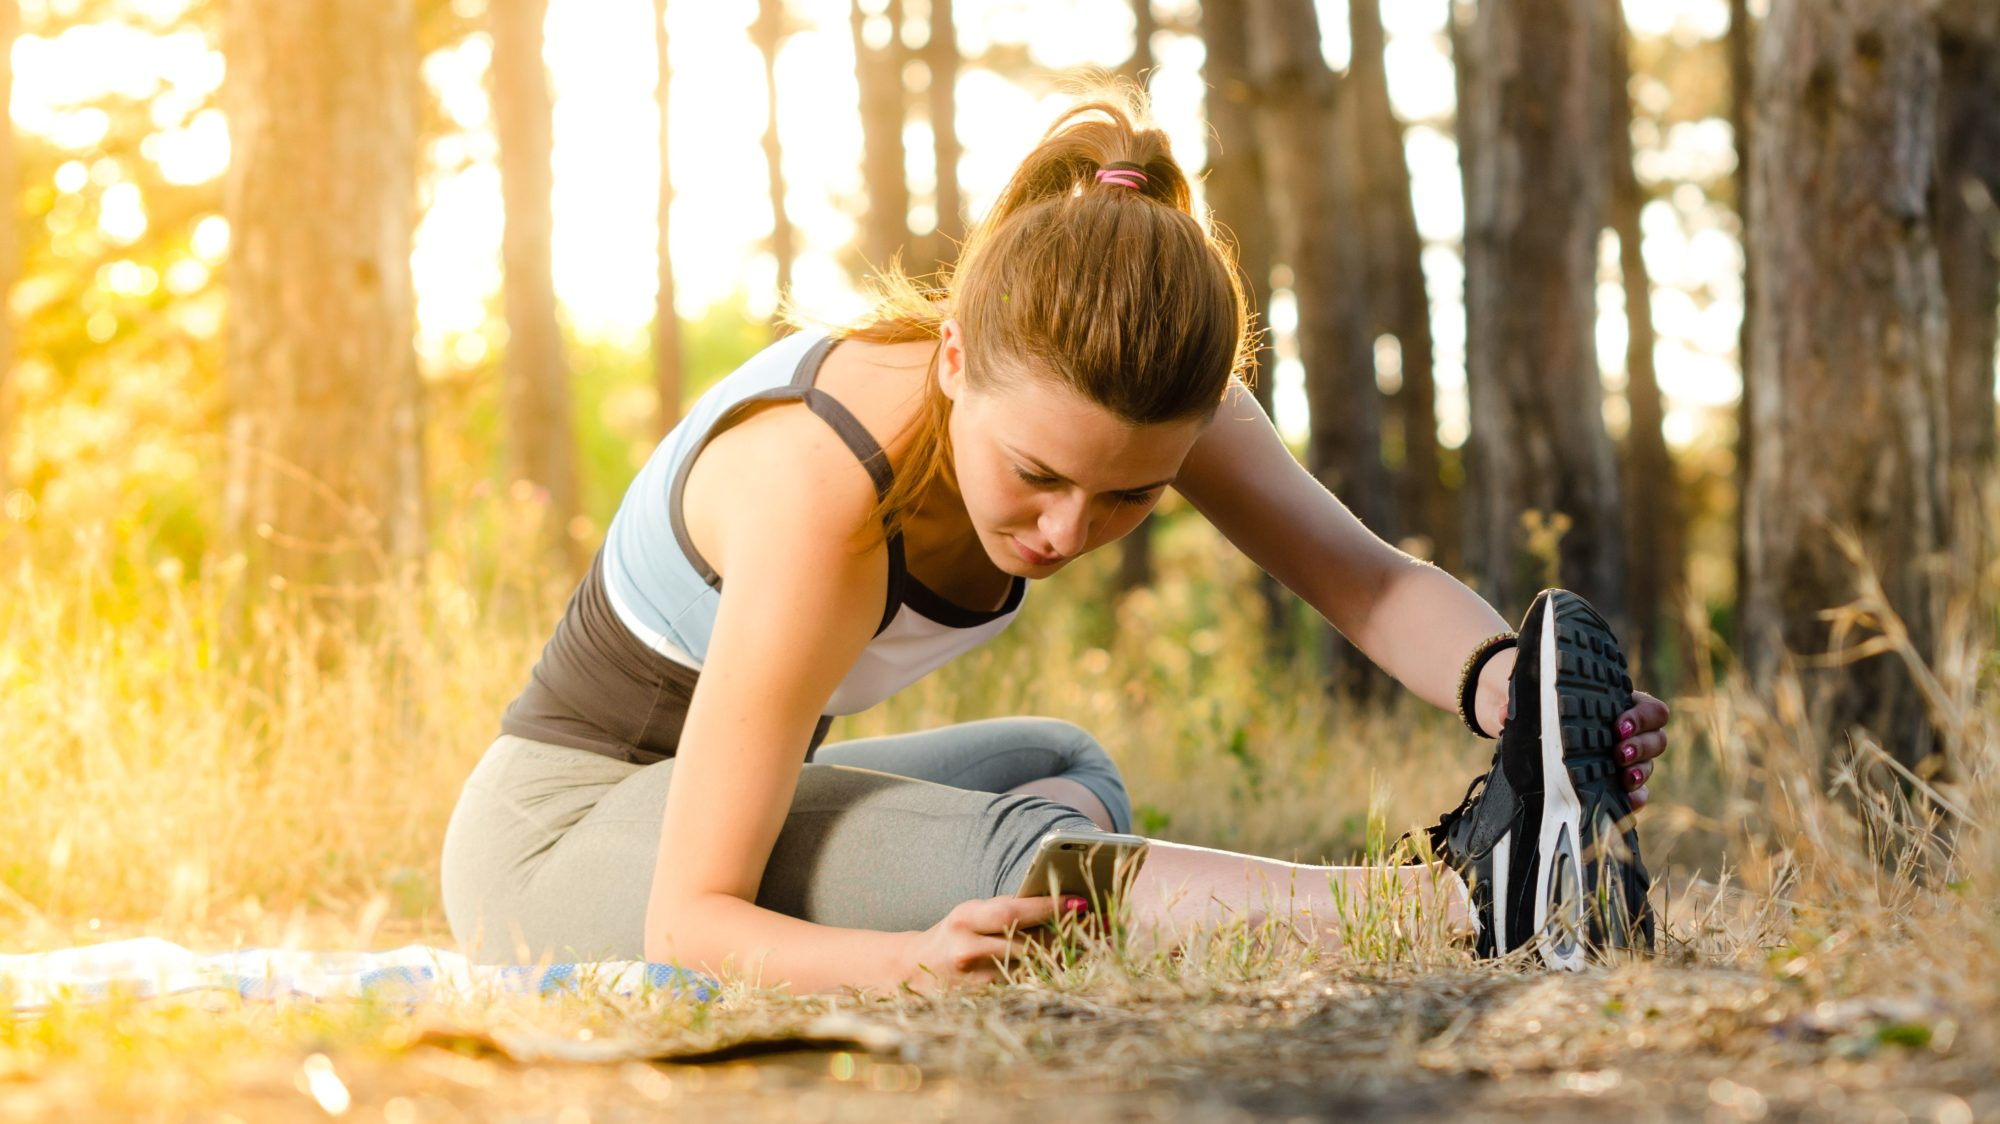 A young woman reading an article on her phone about HCG and weight loss while stretching her leg after a run.